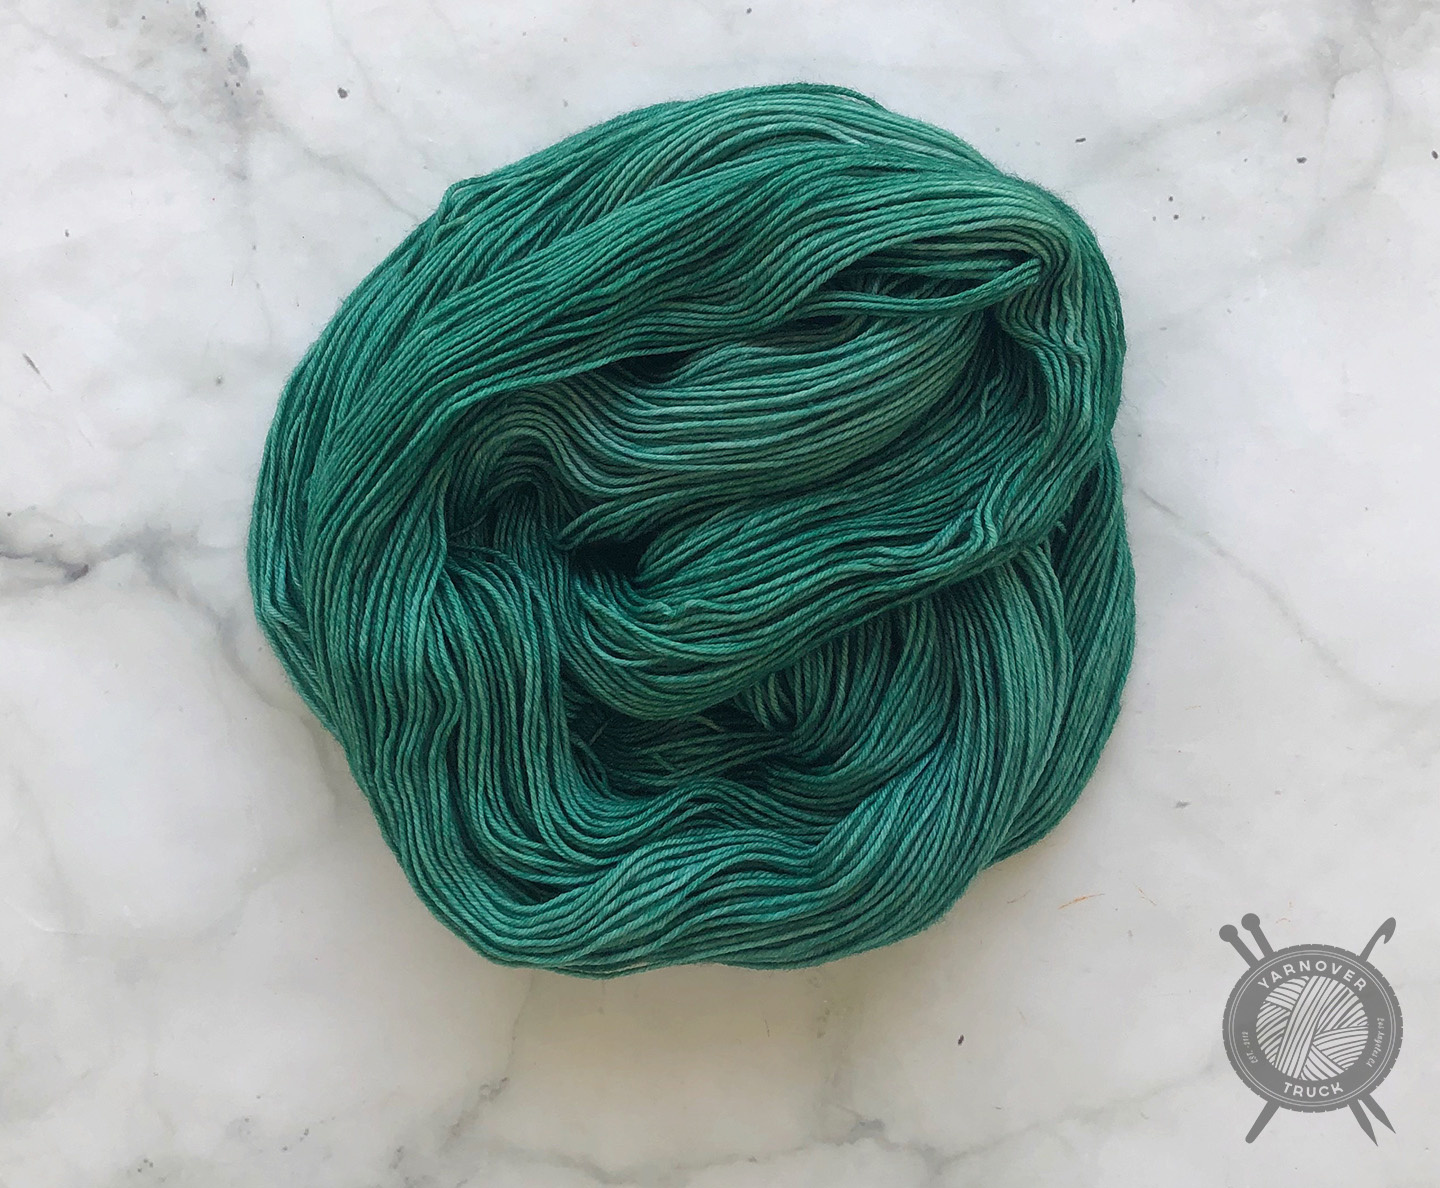 Candy Skein Emerald Gumdrop on Yummy Fingering from Candy Skein